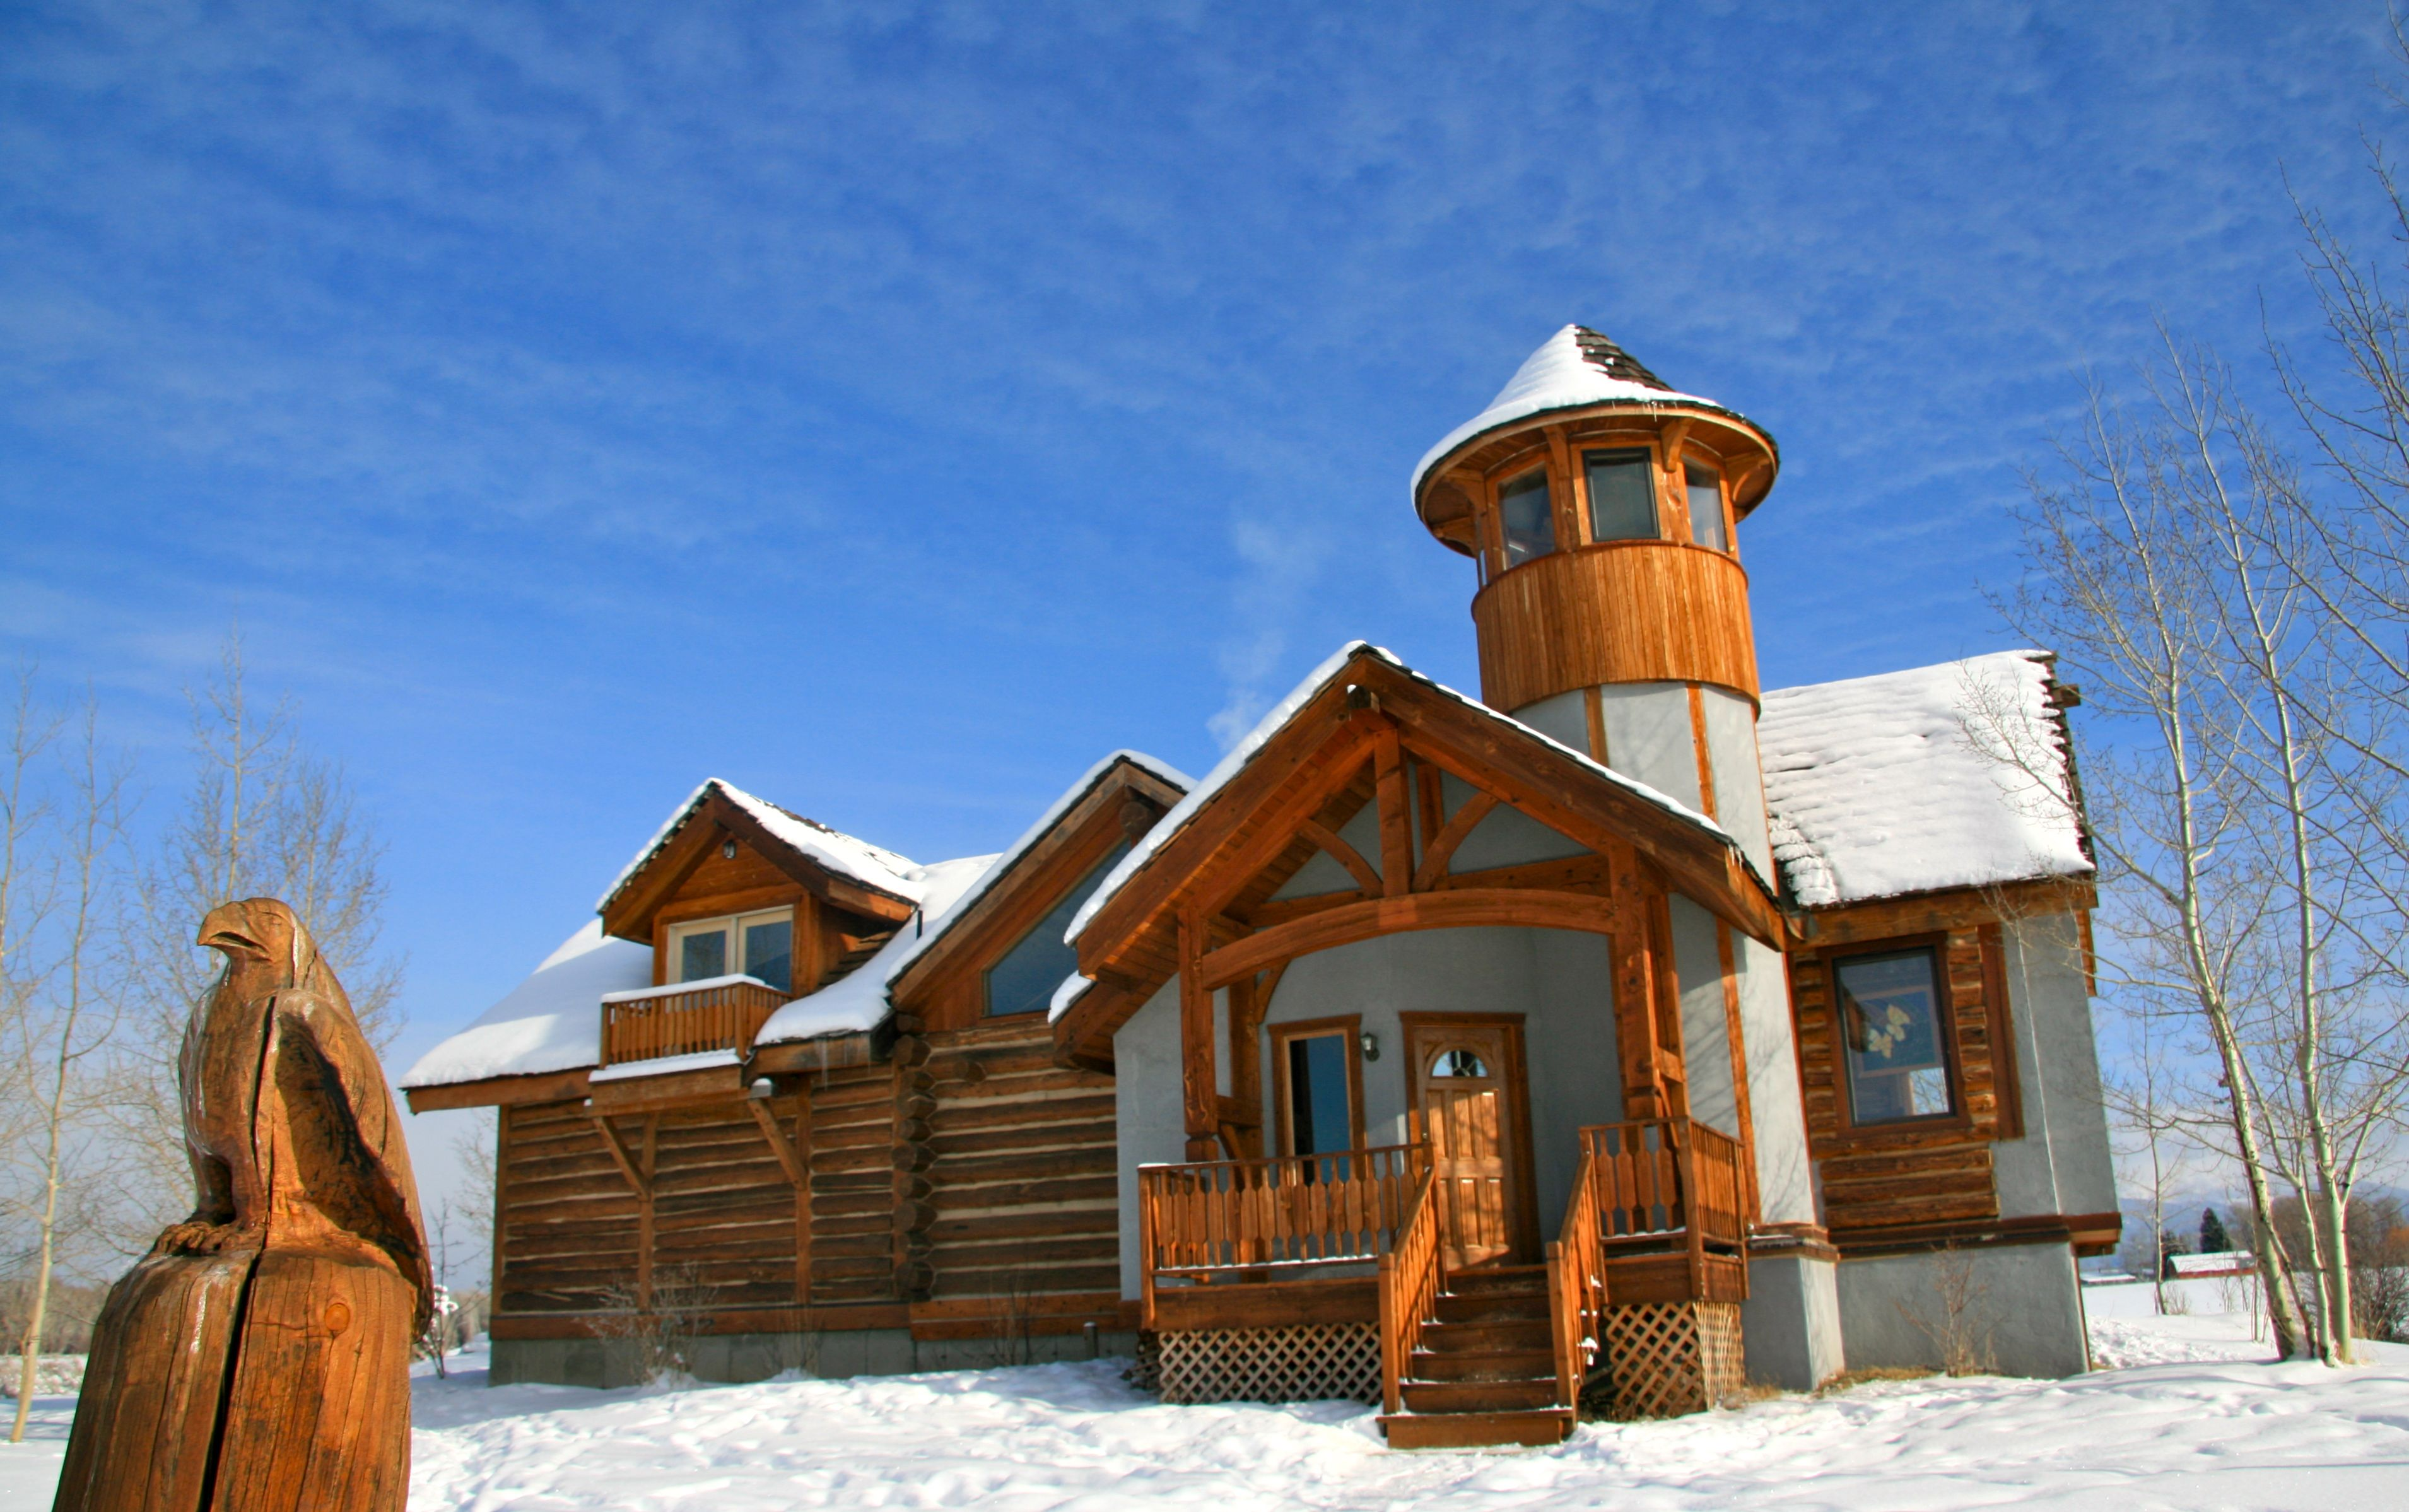 hayes wyoming buckview jackson hole by cabins rentals pin mary cabin on pinterest